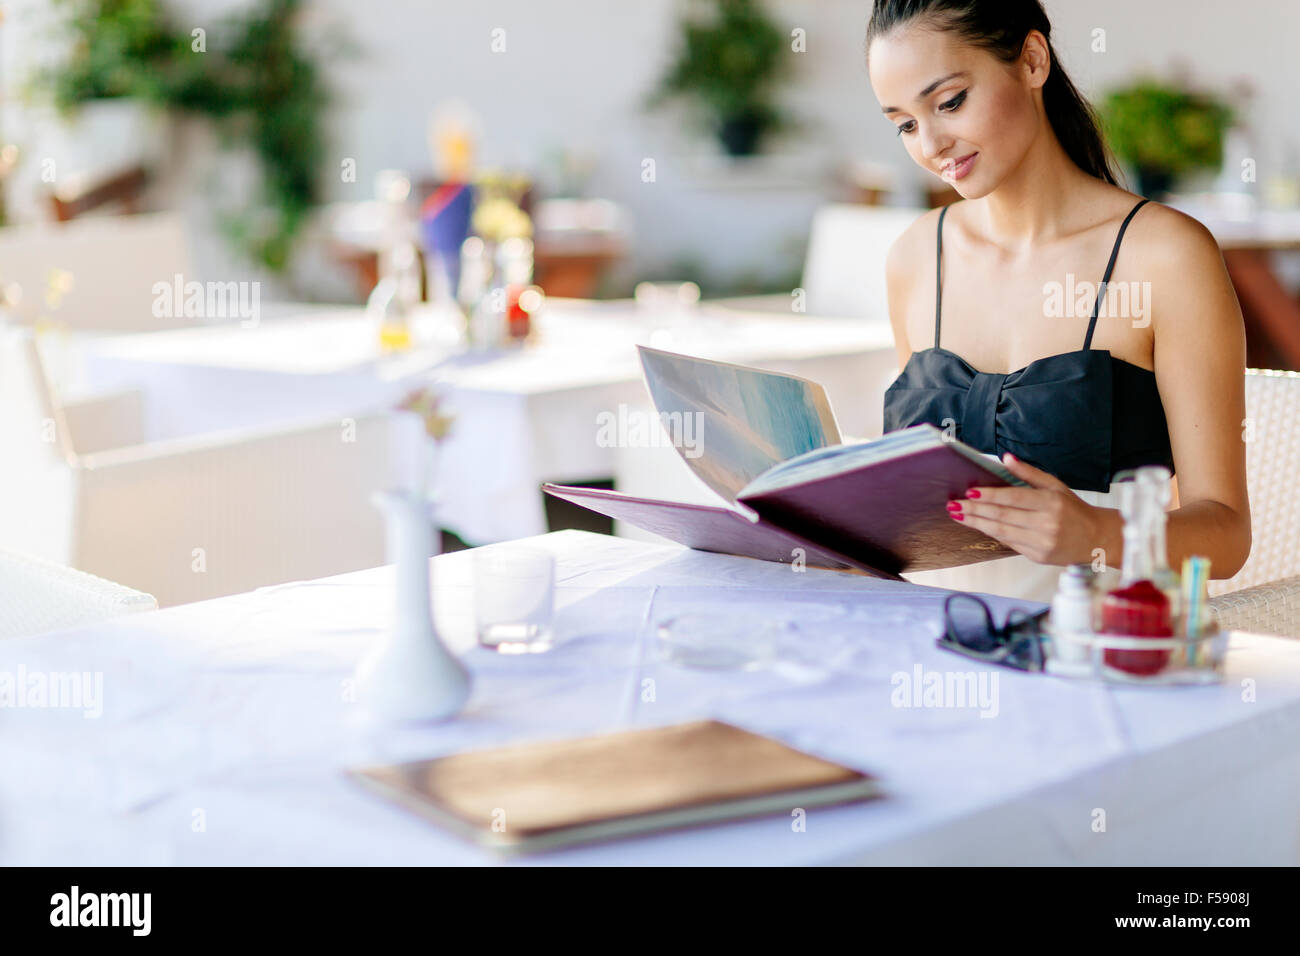 Beautiful woman ordering from menu in restaurant and deciding what to eat - Stock Image